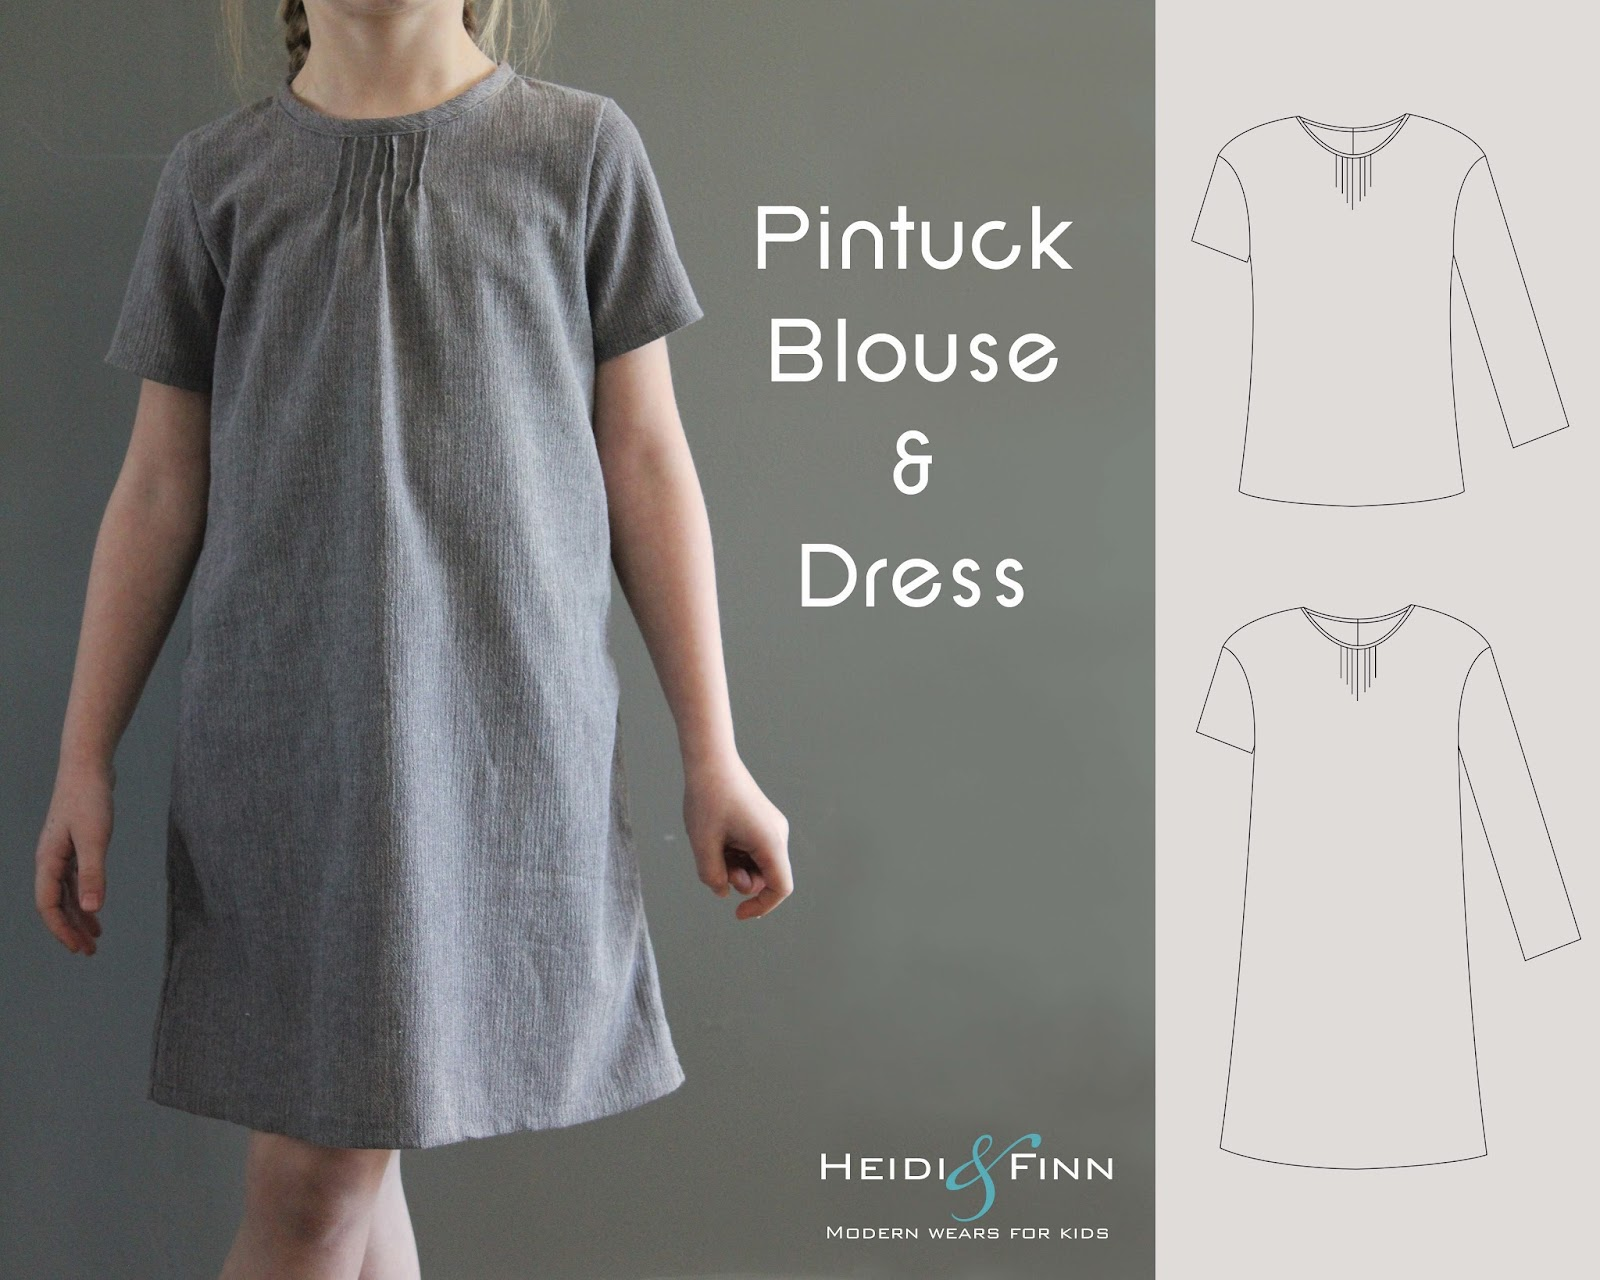 https://www.etsy.com/listing/181306848/pintuck-blouse-and-dress-pdf-pattern-and?